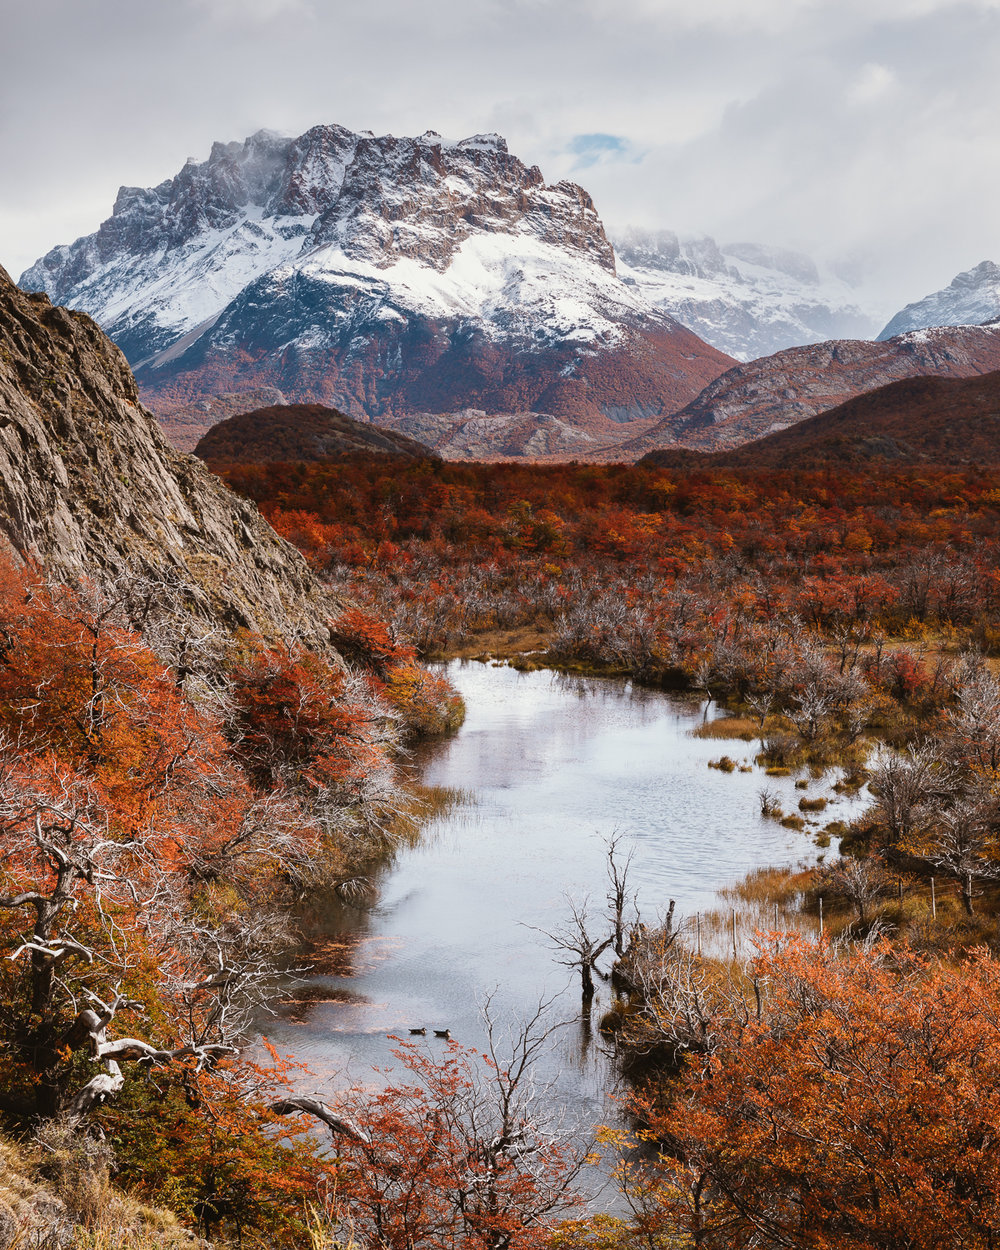 Melissa-Findley-PATAGONIA-Autumn-2018-22.jpg